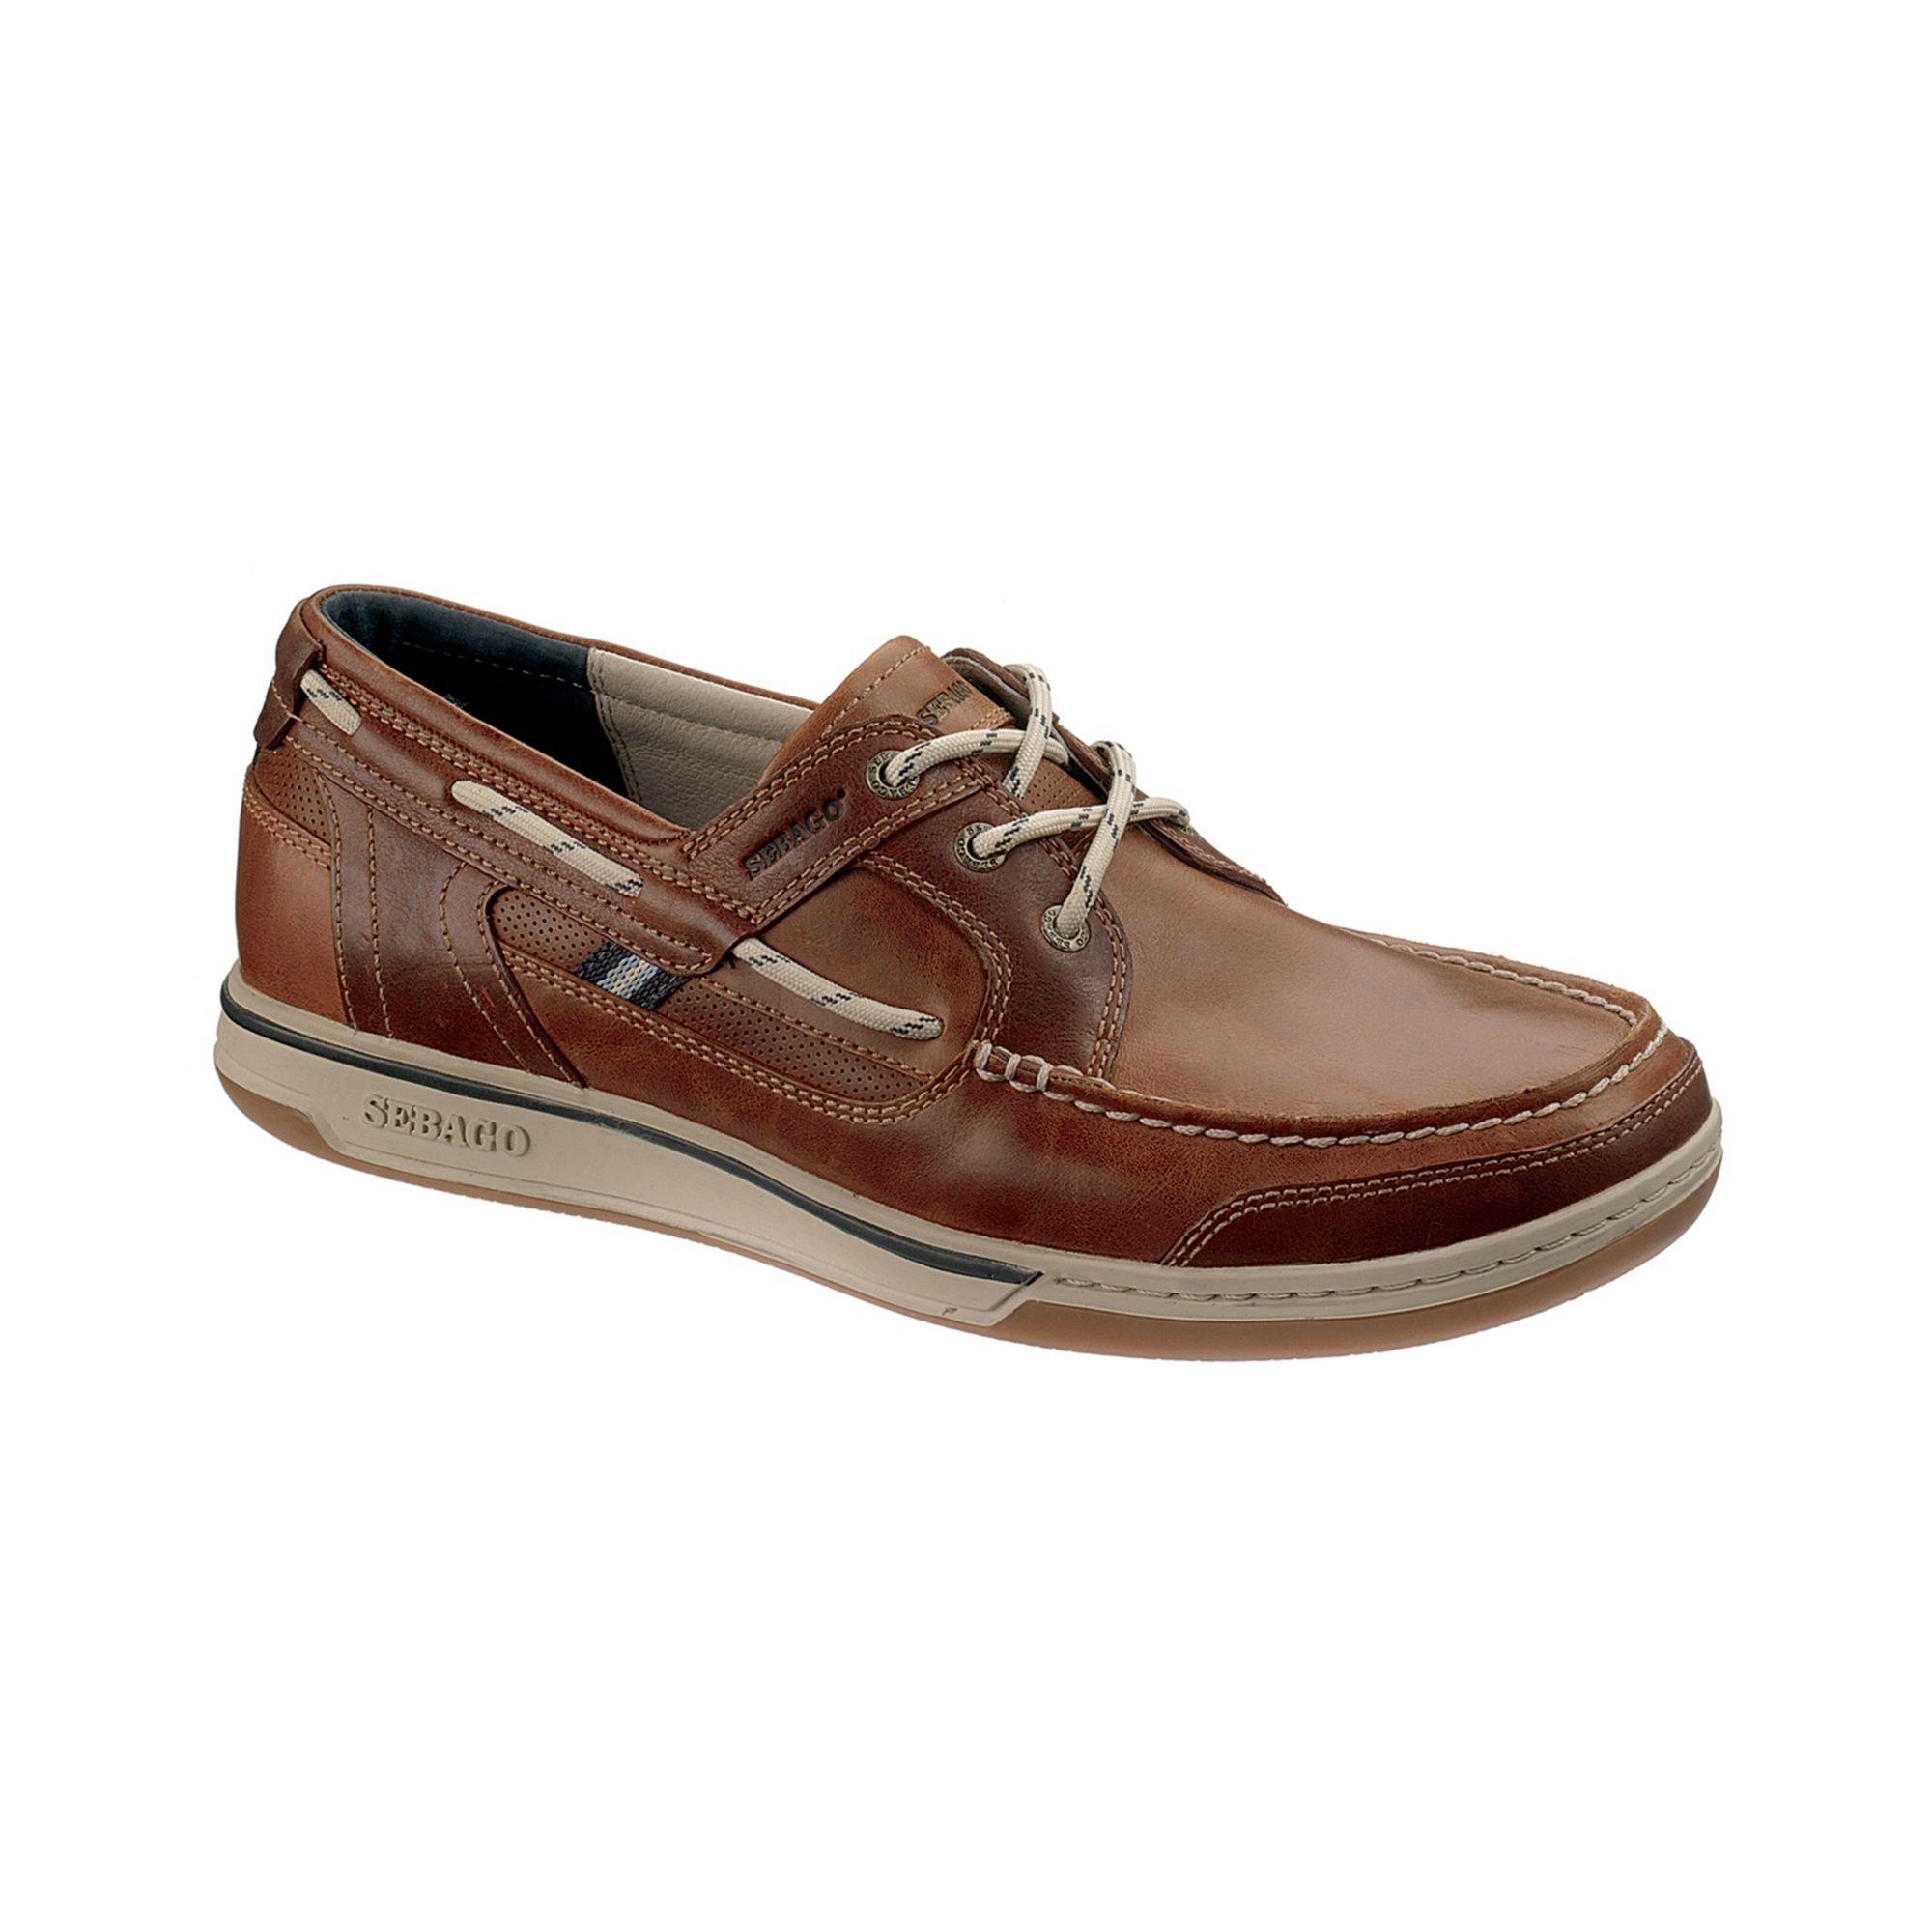 River Island Mens Leather Deck Shoes